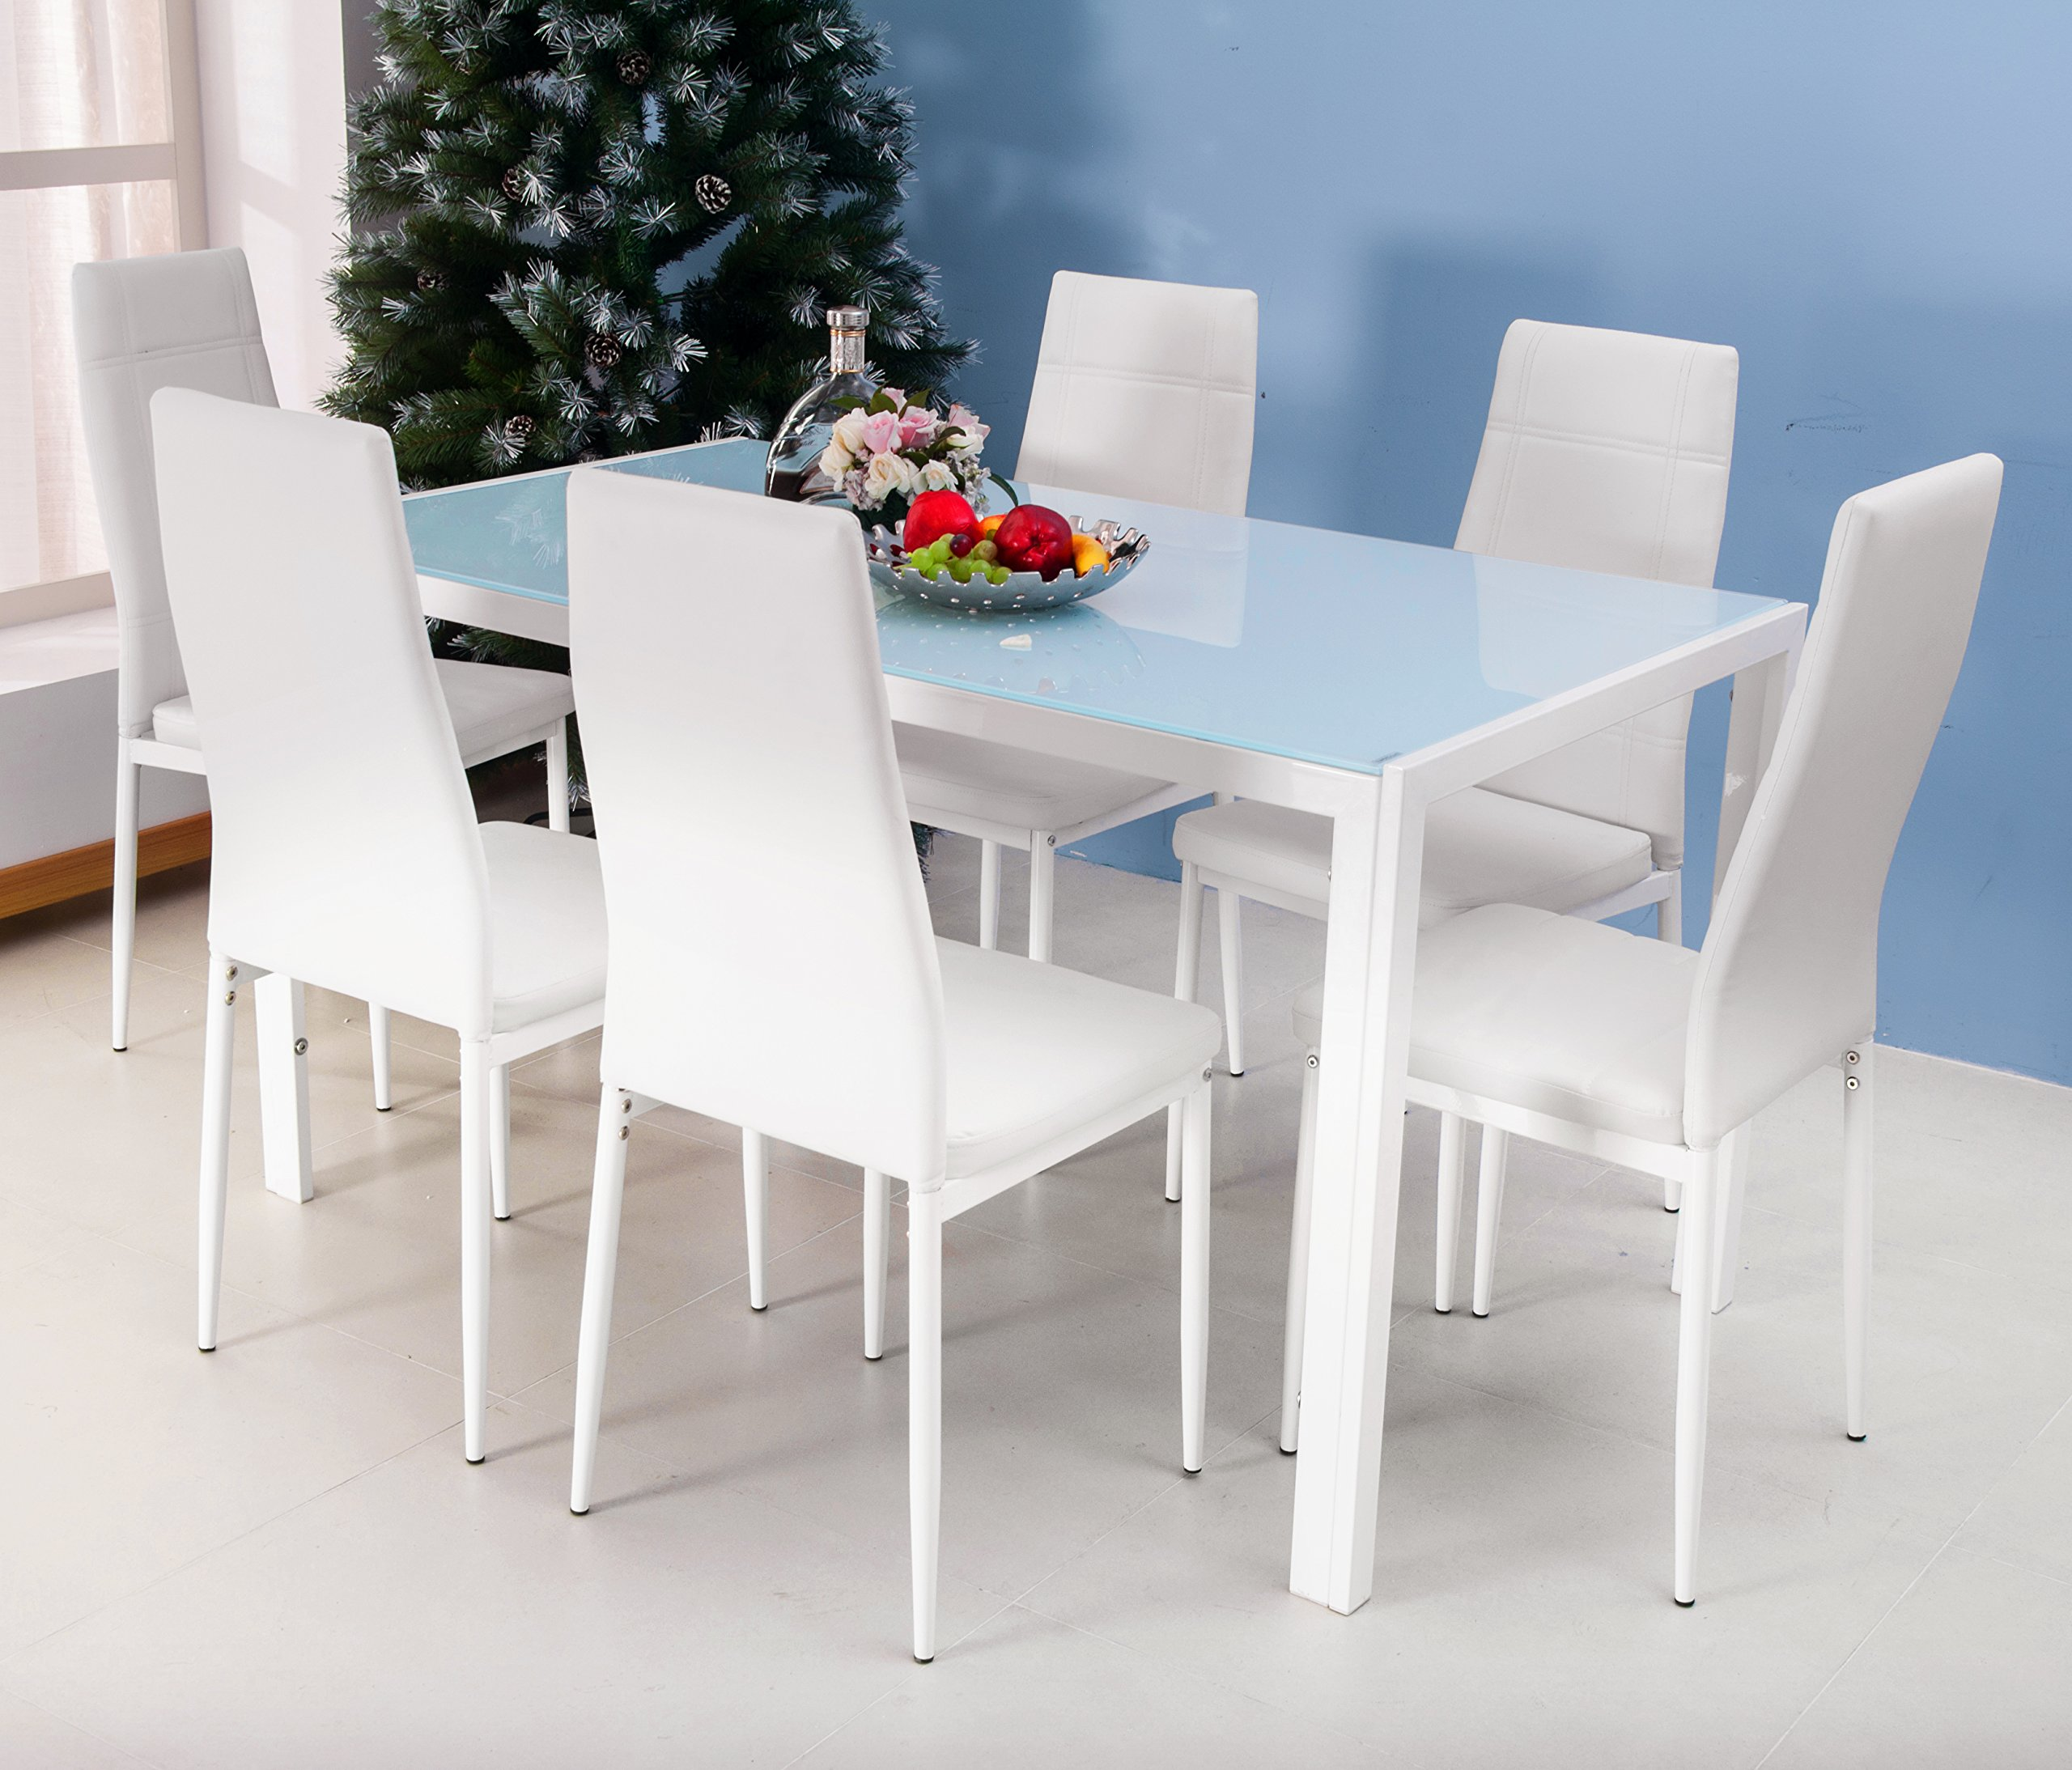 Merax 7PC Glass Top Dining Set 6 Person Dining Table and Chairs Set Kitchen Modern Furniture Dining Dinette (White)